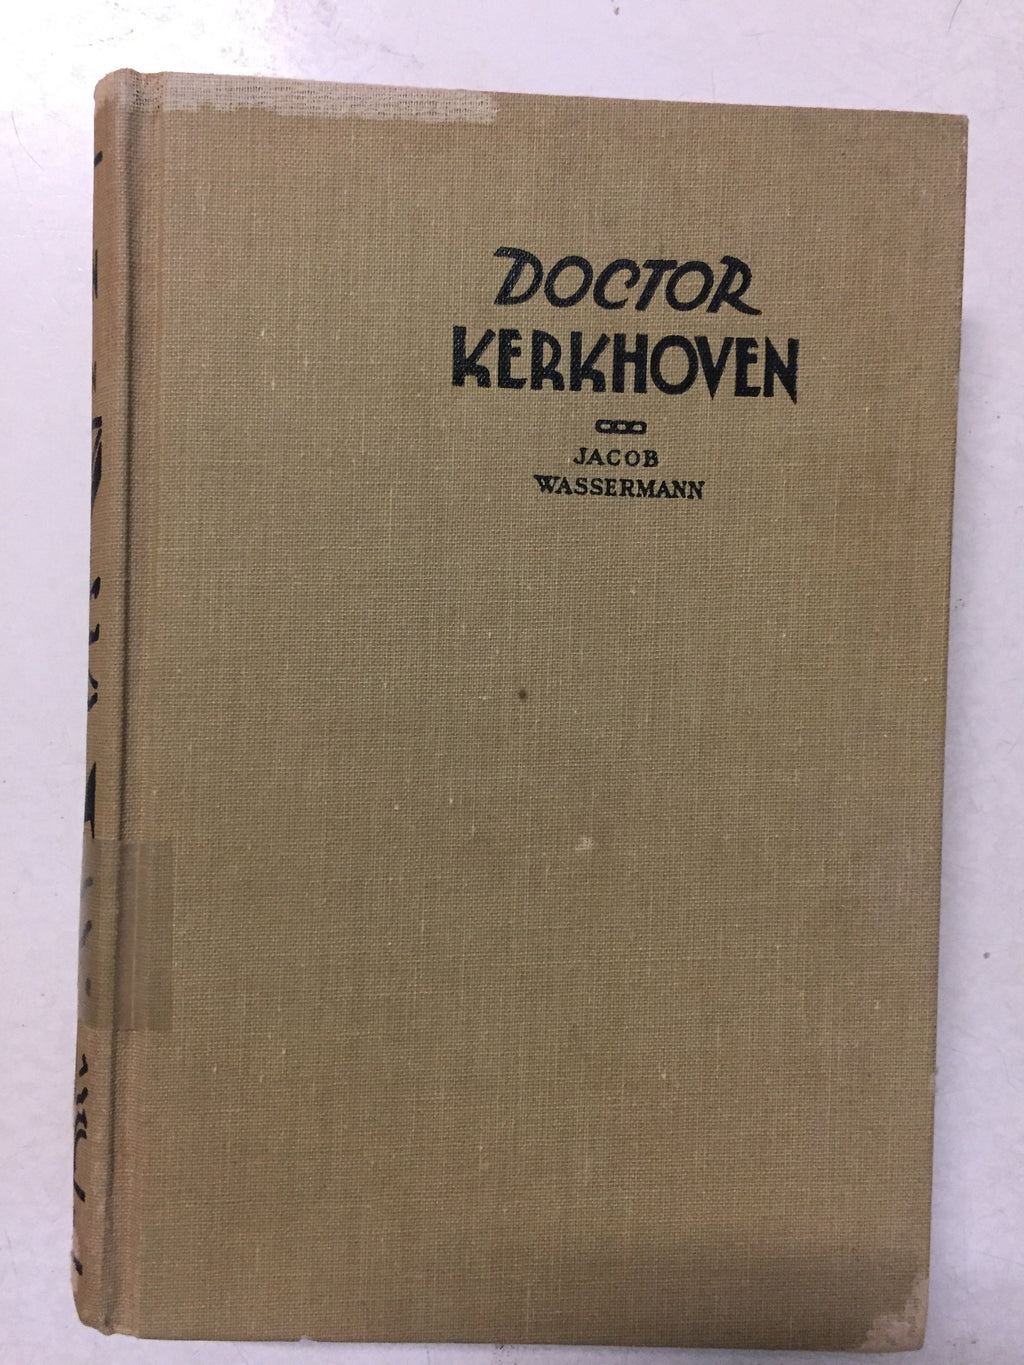 Doktor Kerkhoven - Slick Cat Books